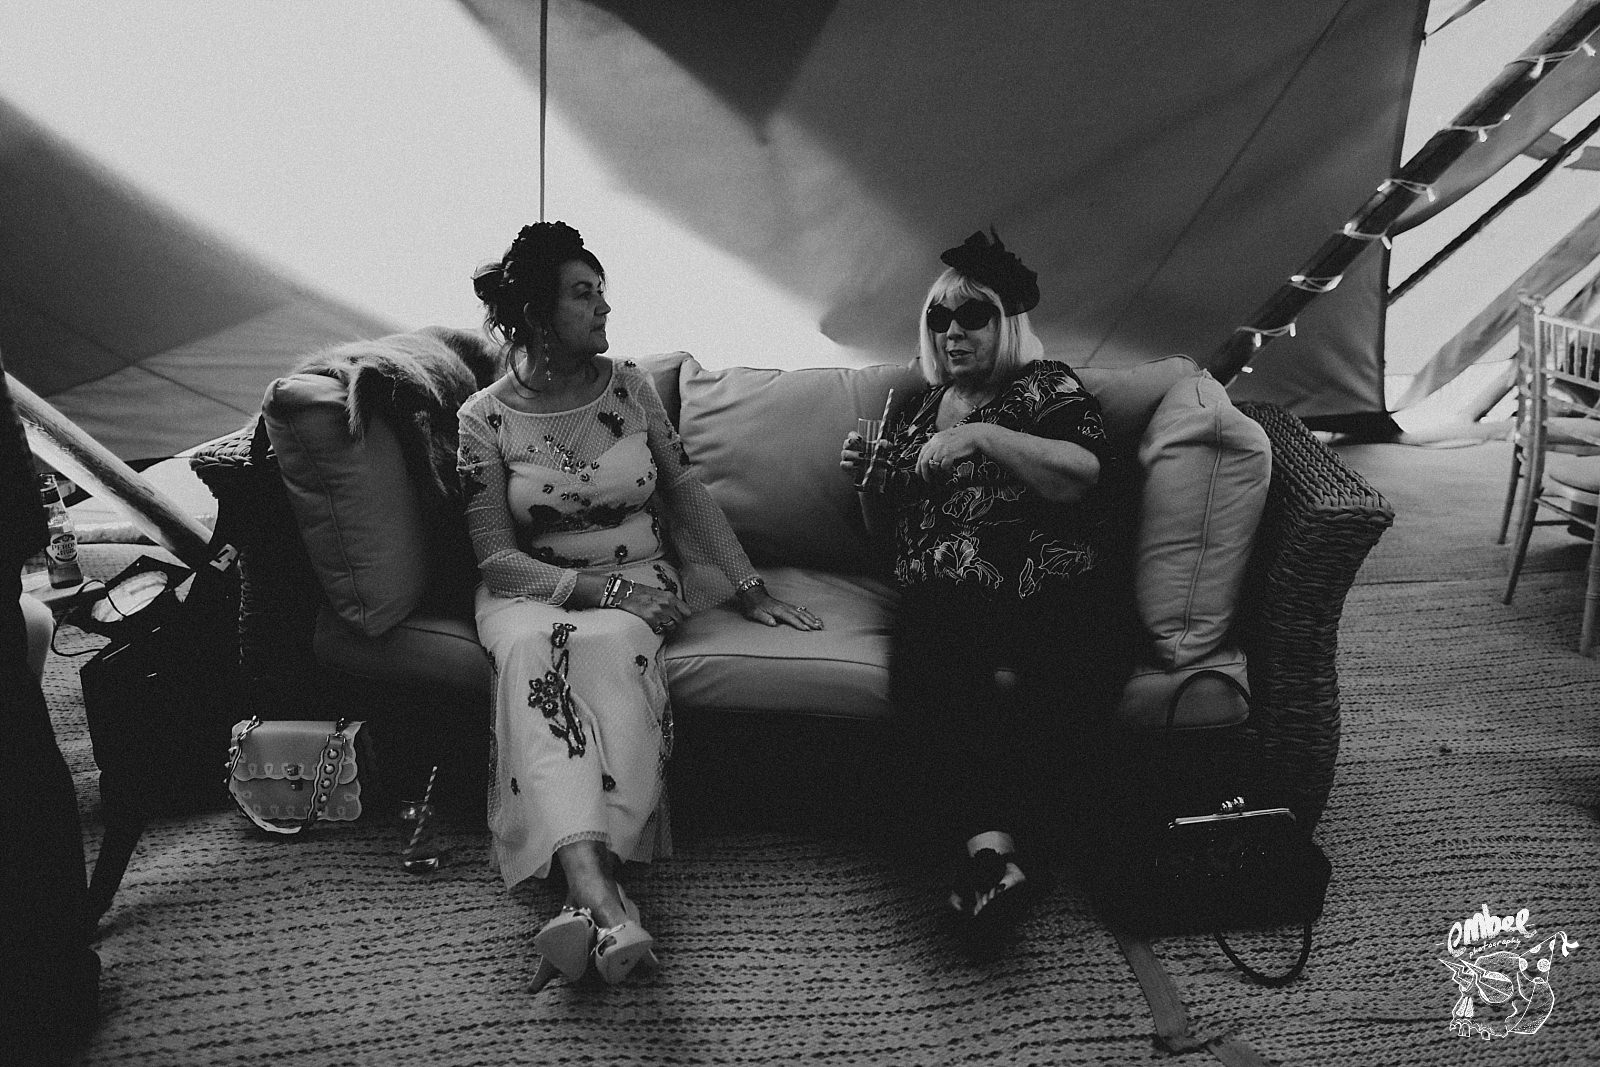 two woman on a couch